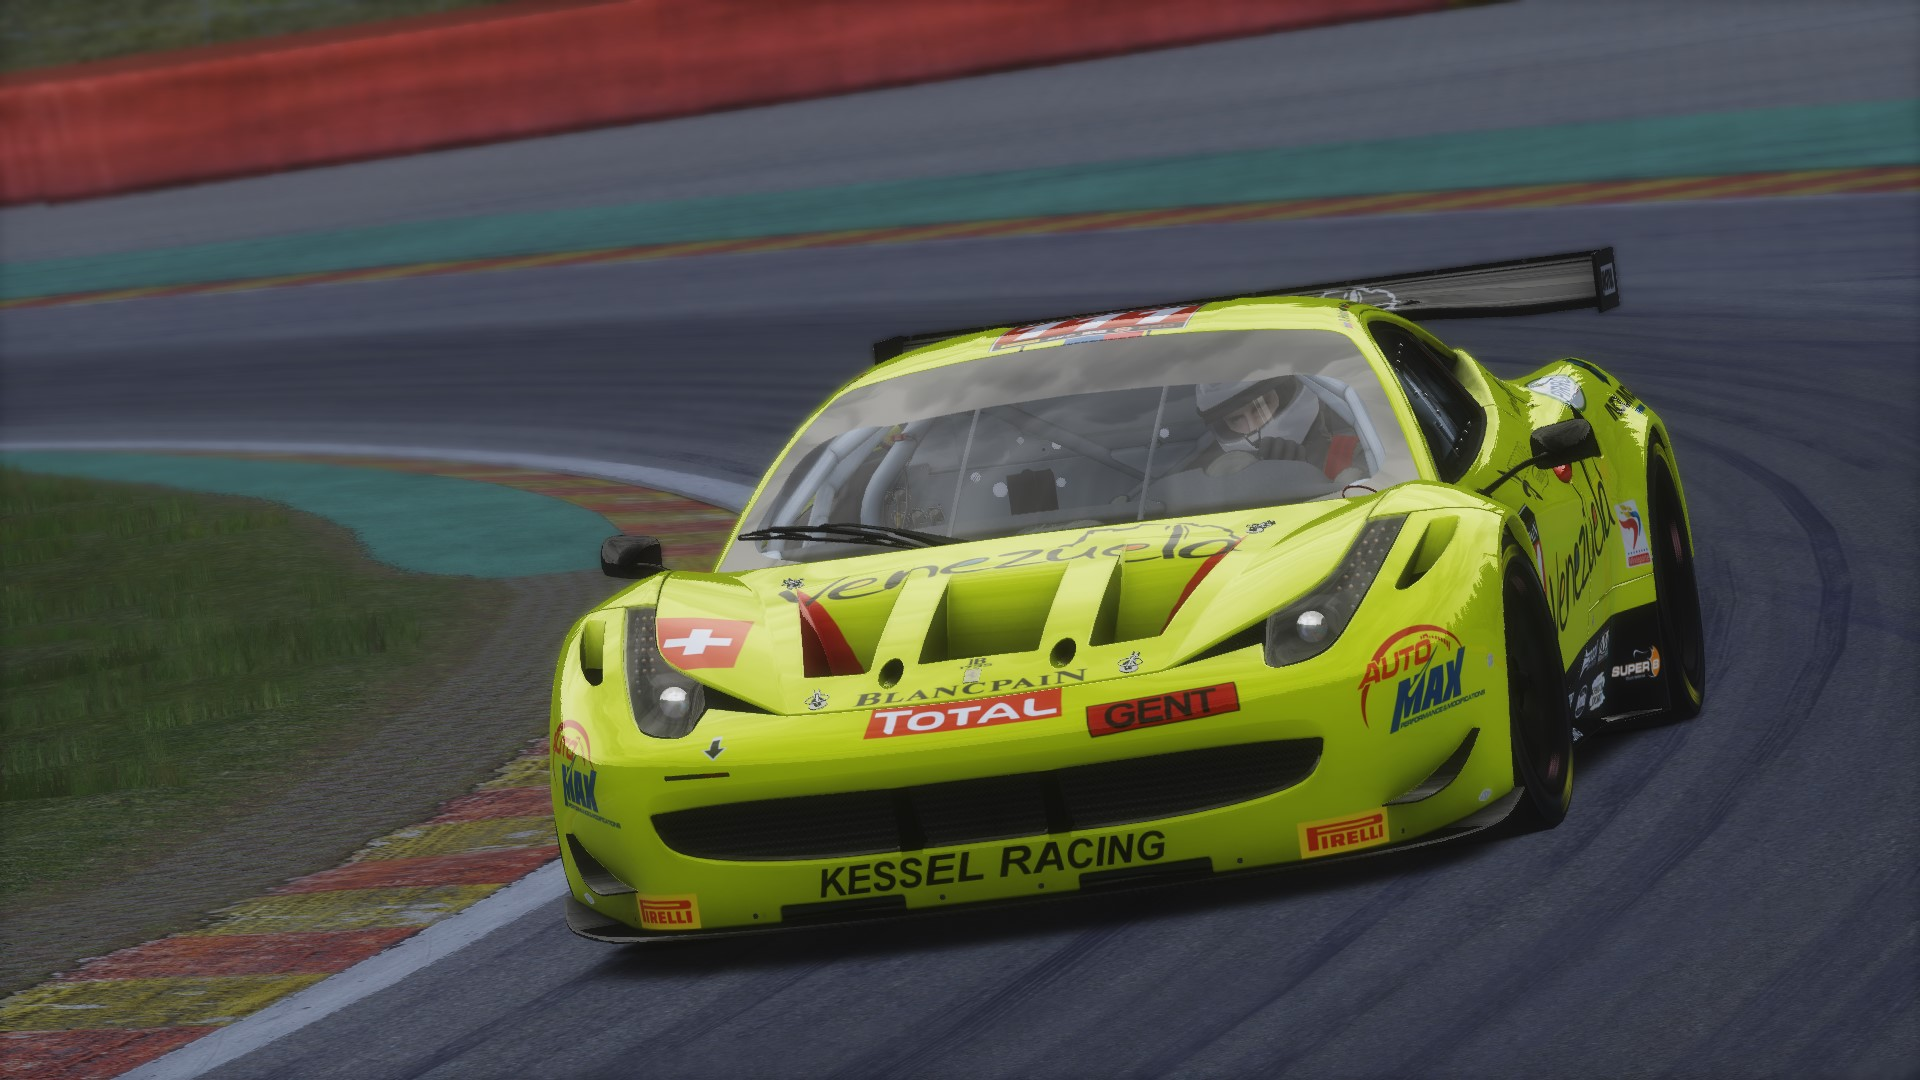 Screenshot_ferrari_458_gt2_spa_1-2-2015-16-12-44.jpg